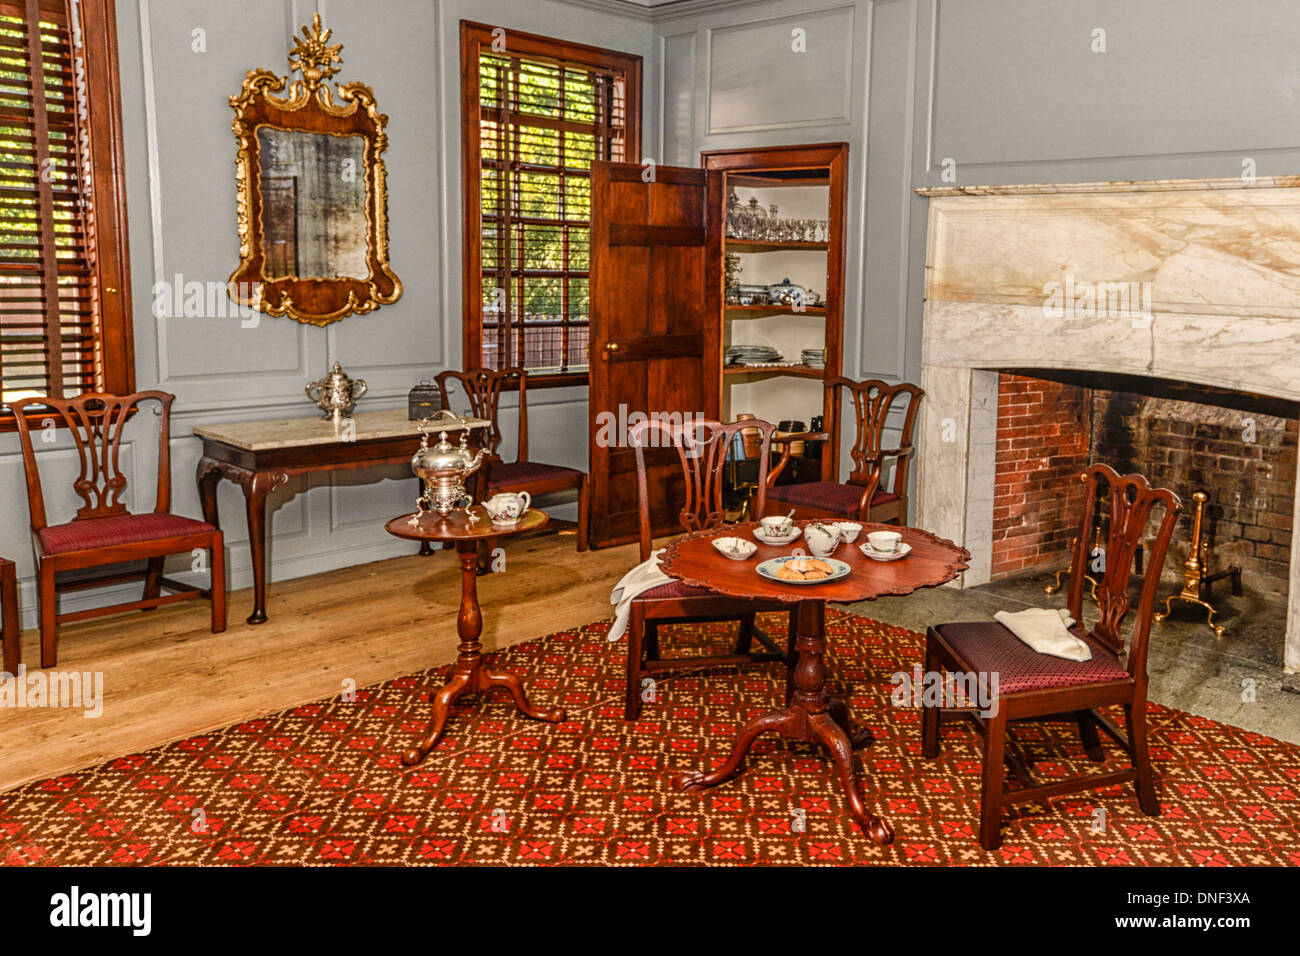 Peyton randolph house interior room and furnishings in colonial stock photo royalty free image - House interior images ...